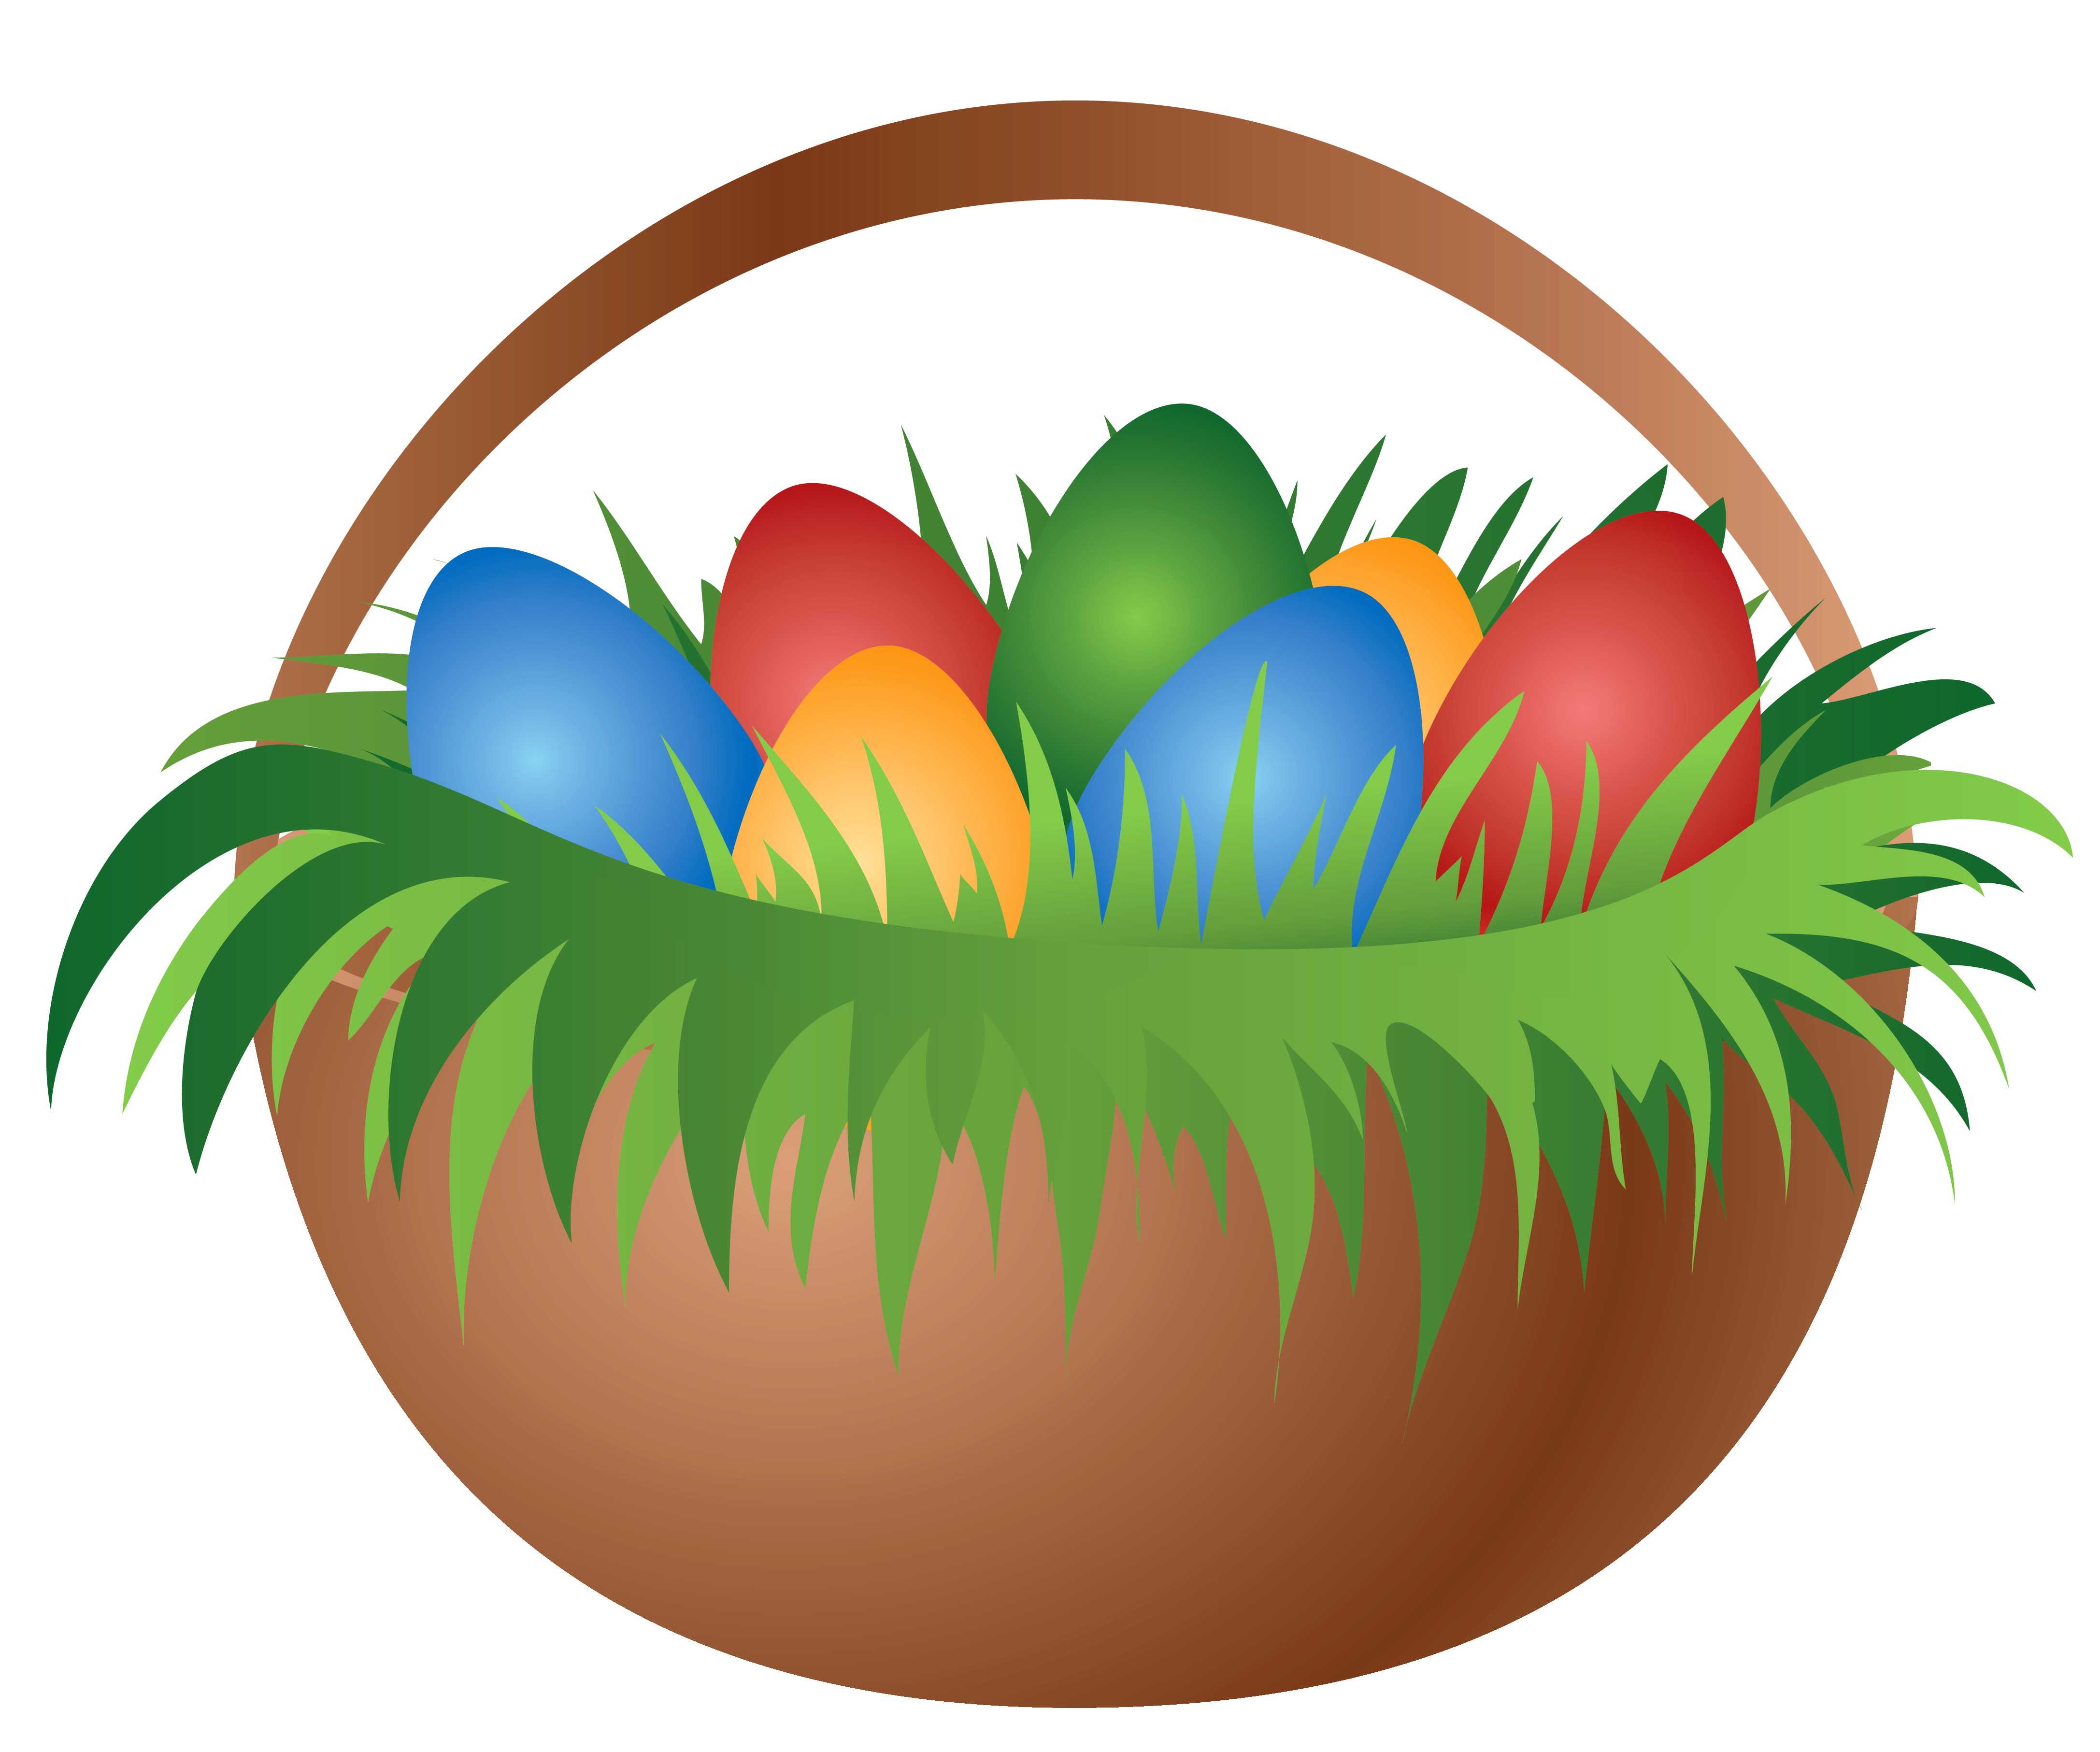 Clipart grass easter egg. Painted basket with eggs